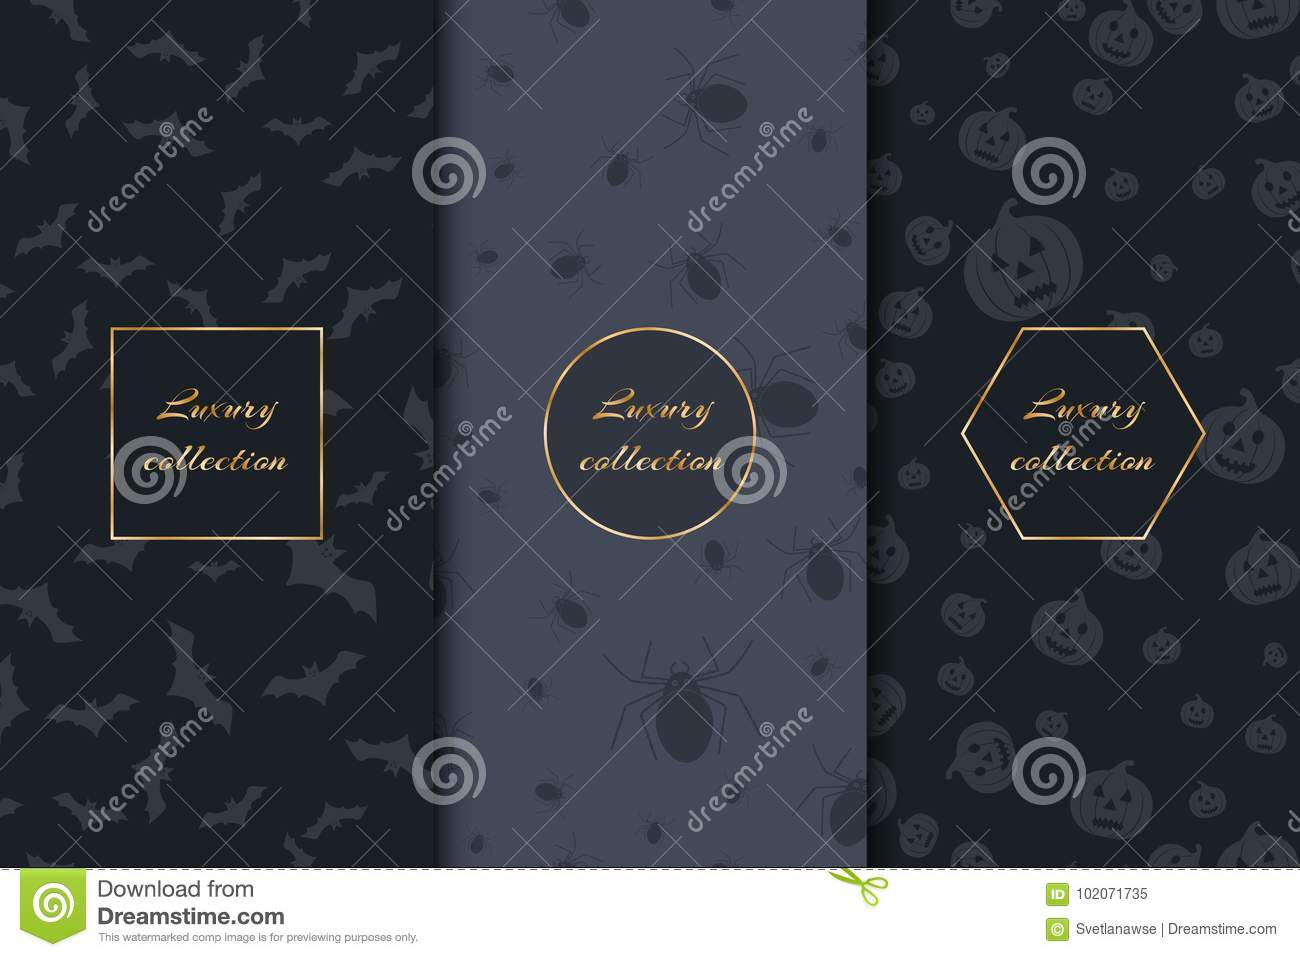 luxury backgrounds for halloween stock vector - illustration of